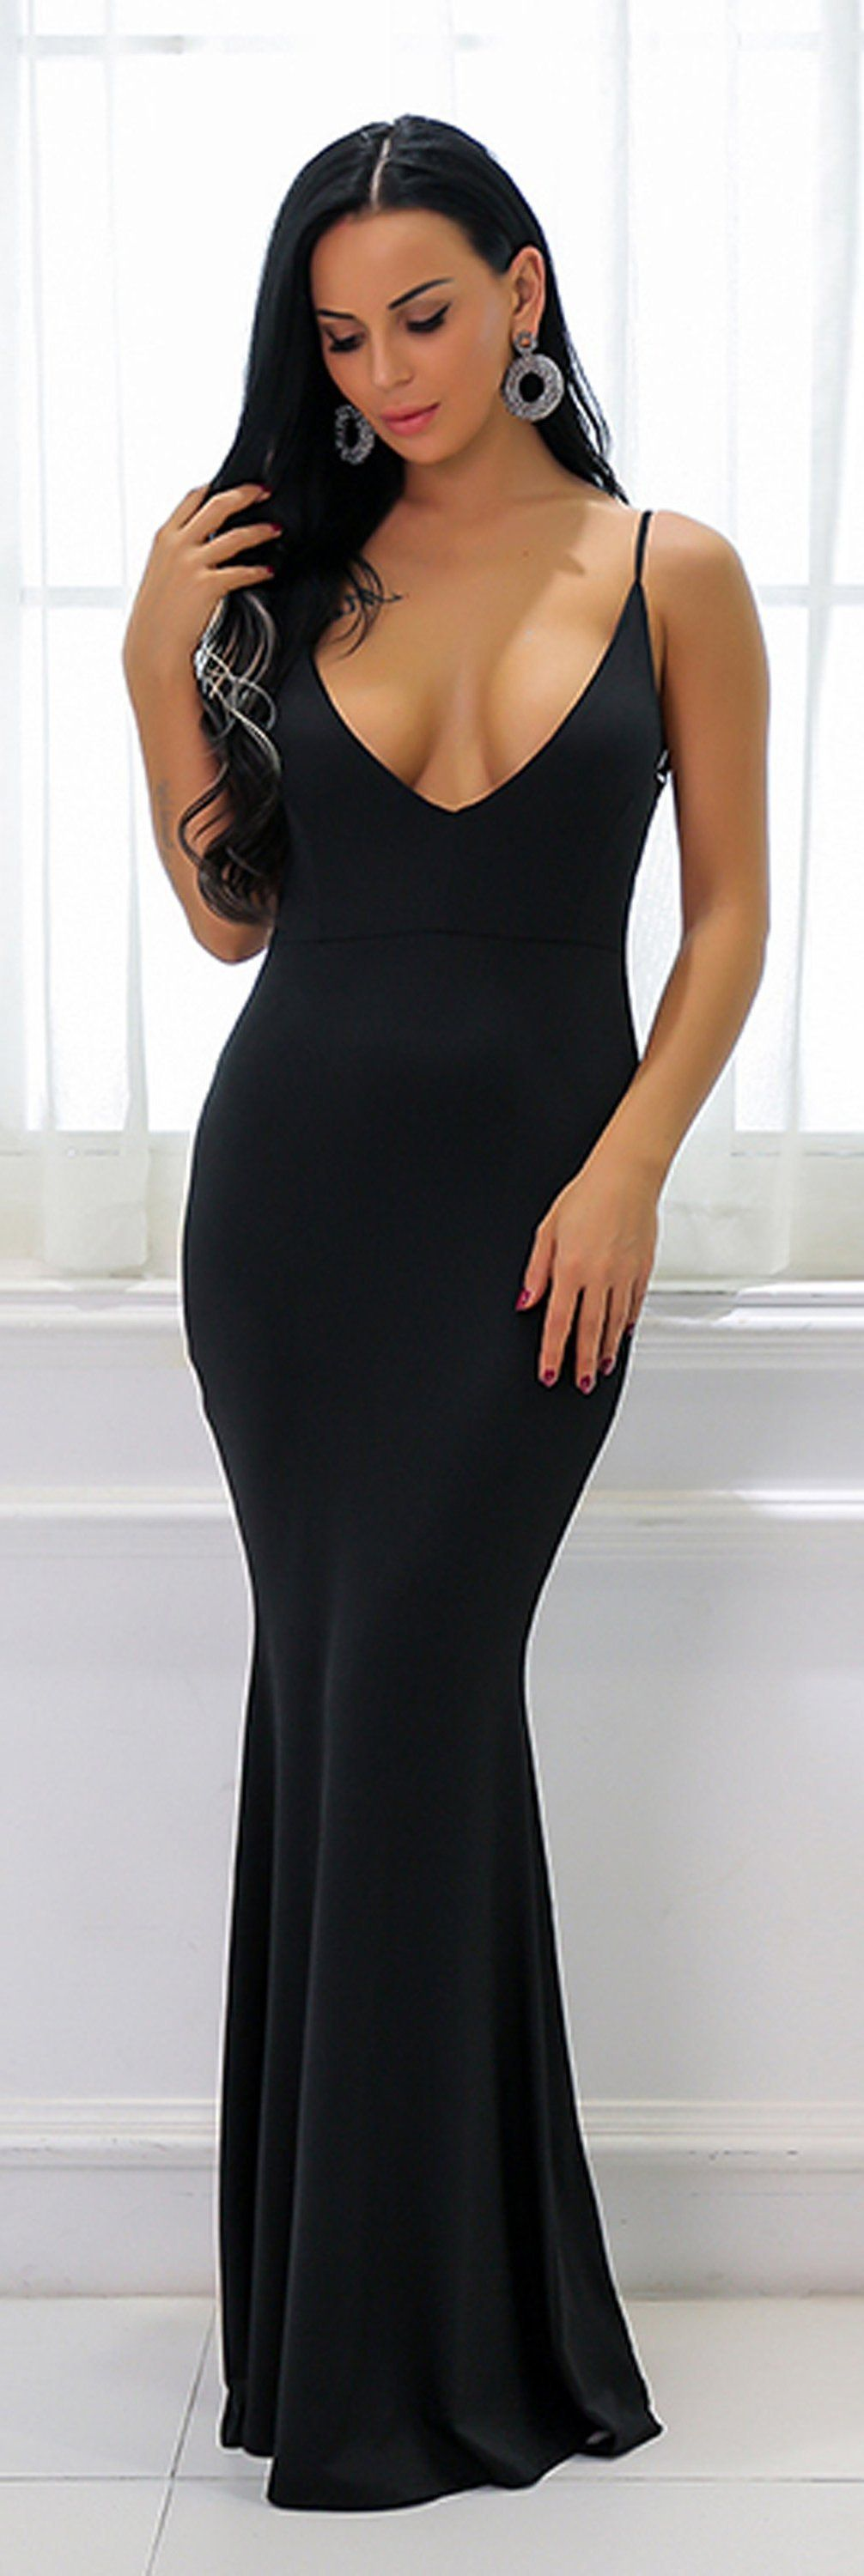 03bbc67572 Hot Black Tight Long Prom Dresses - Low Cut Ruched Backless Deep V Neck  Plunge Mermaid Gown Simple Maxi Dress for Graduation Homecoming Cocktail  Evening ...